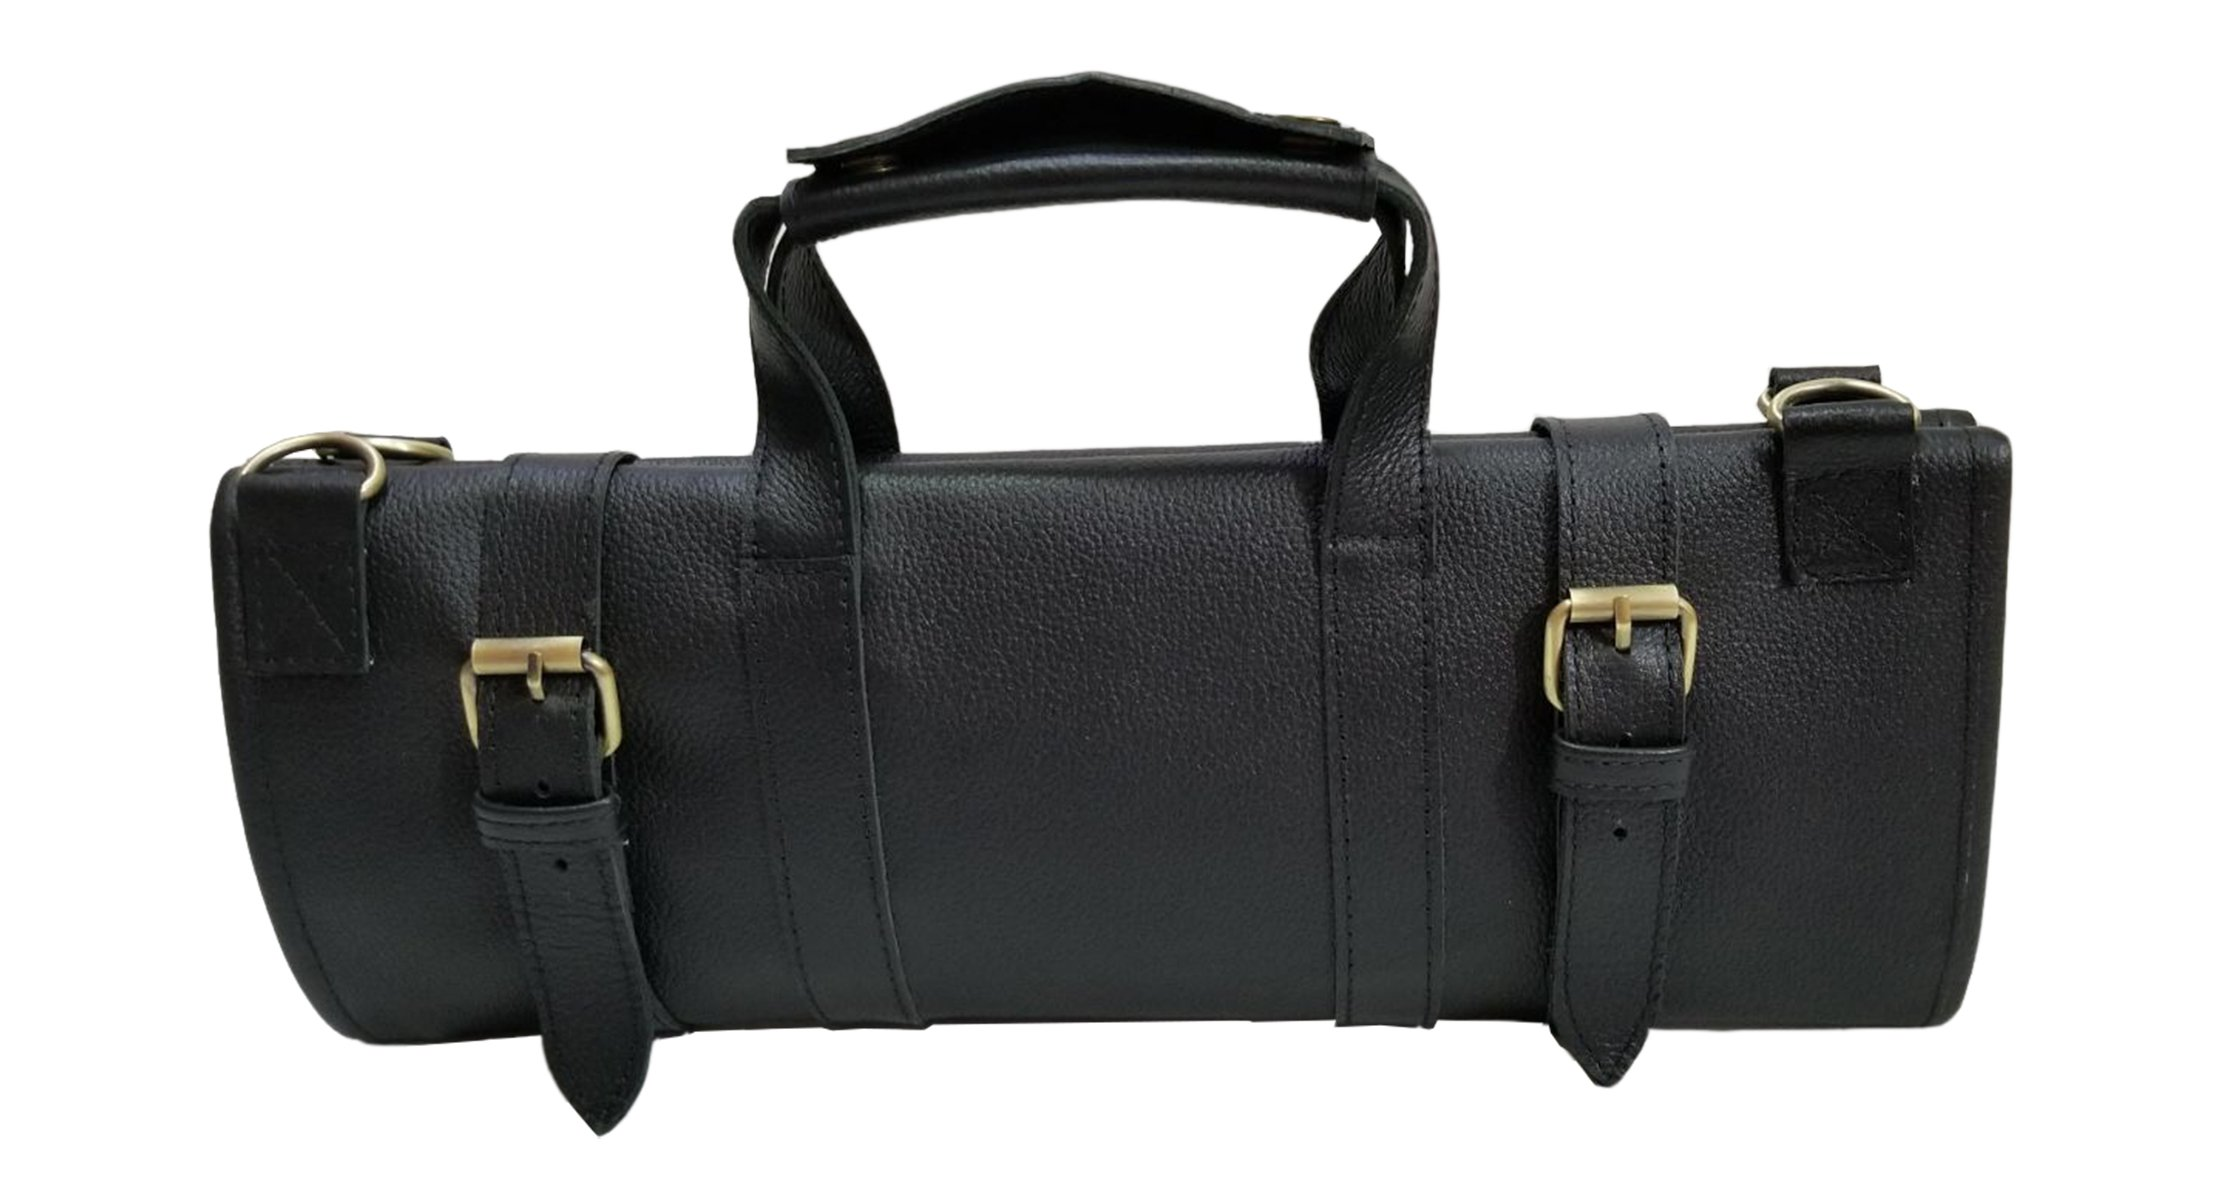 Professional Chef Bag Lightweight Genuine Premium BLACK LEATHER 13 Pockets Knife Bag/Chef Knife Roll #K09